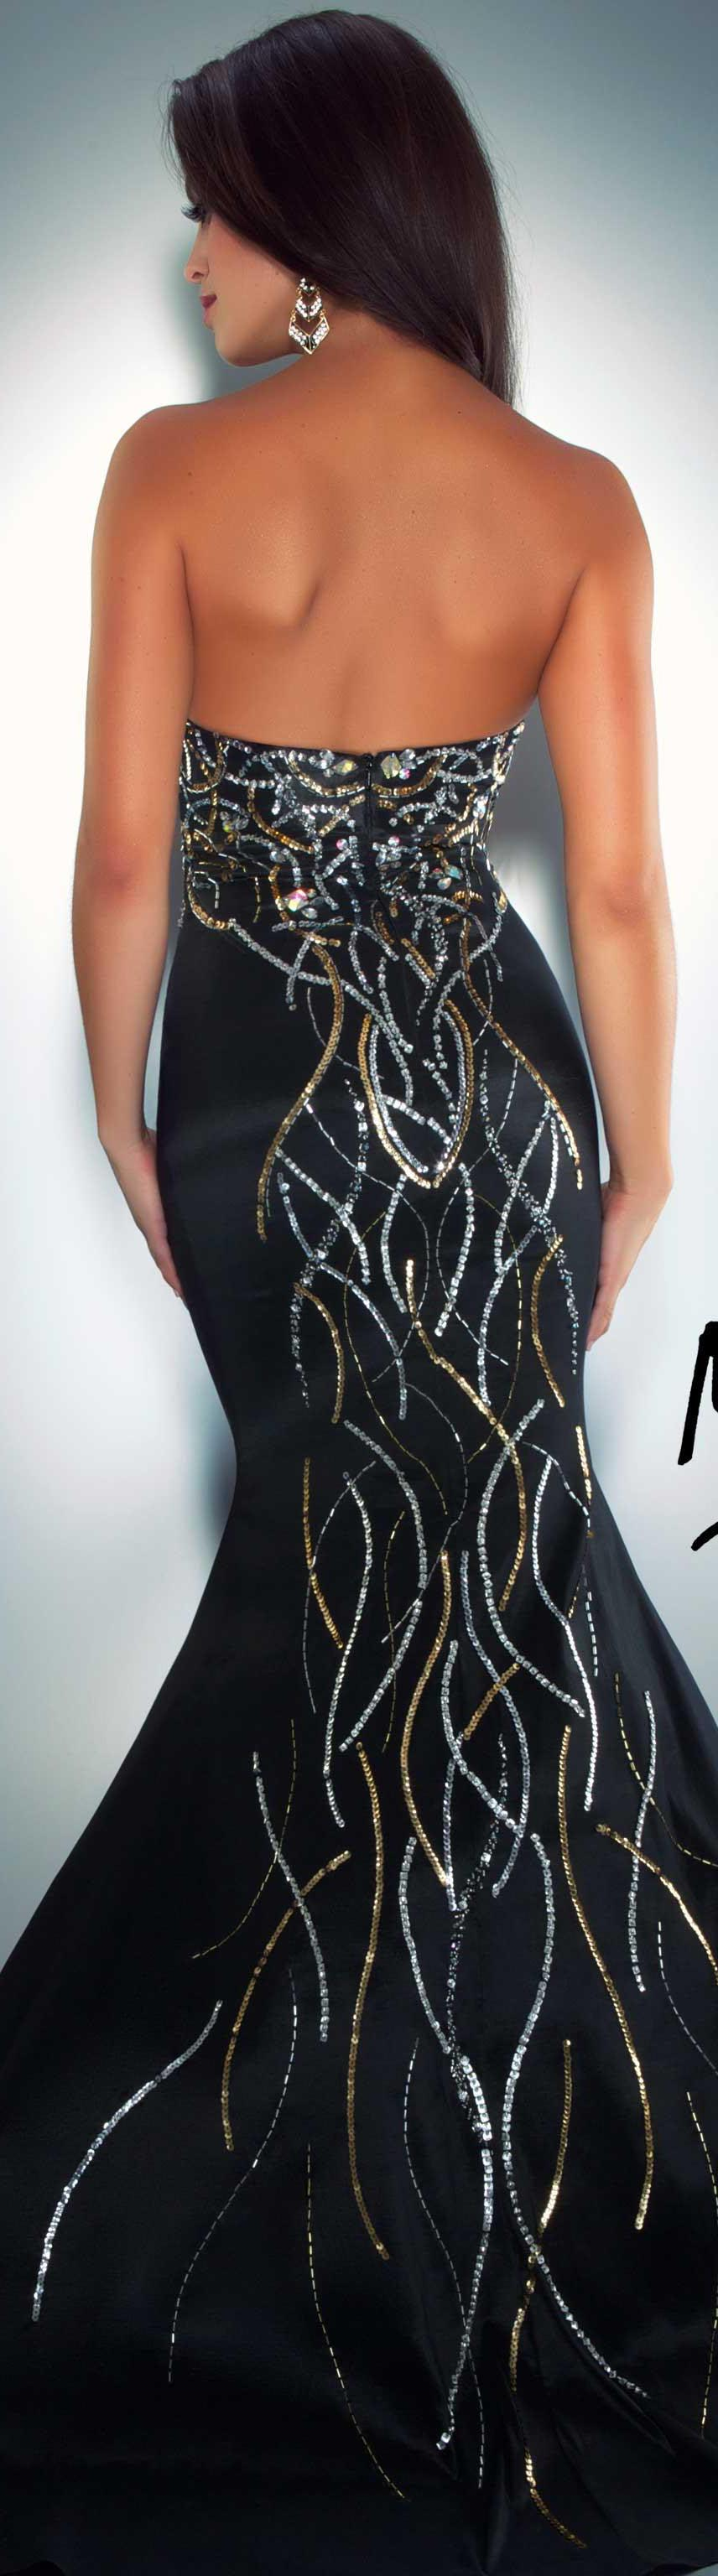 Mac duggal couture dress black gold strapless long formal mermaid